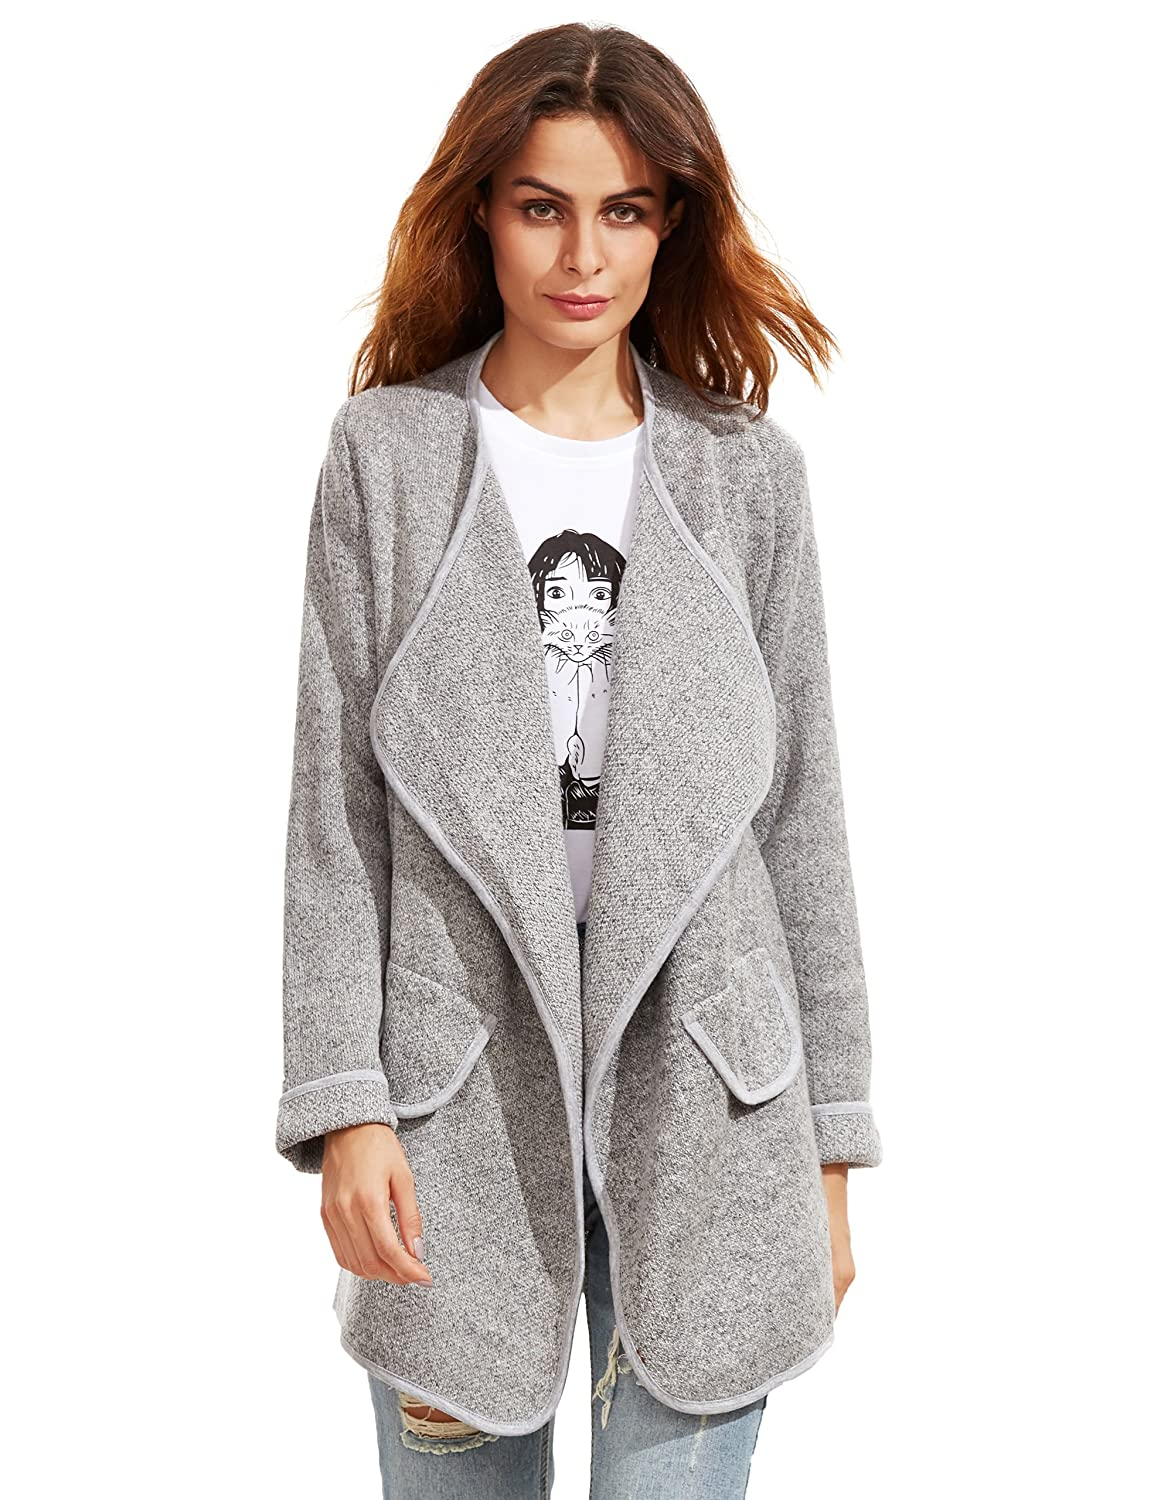 SheIn Women's Long Cardigan Open Front Sweater Coat One-size Grey ...